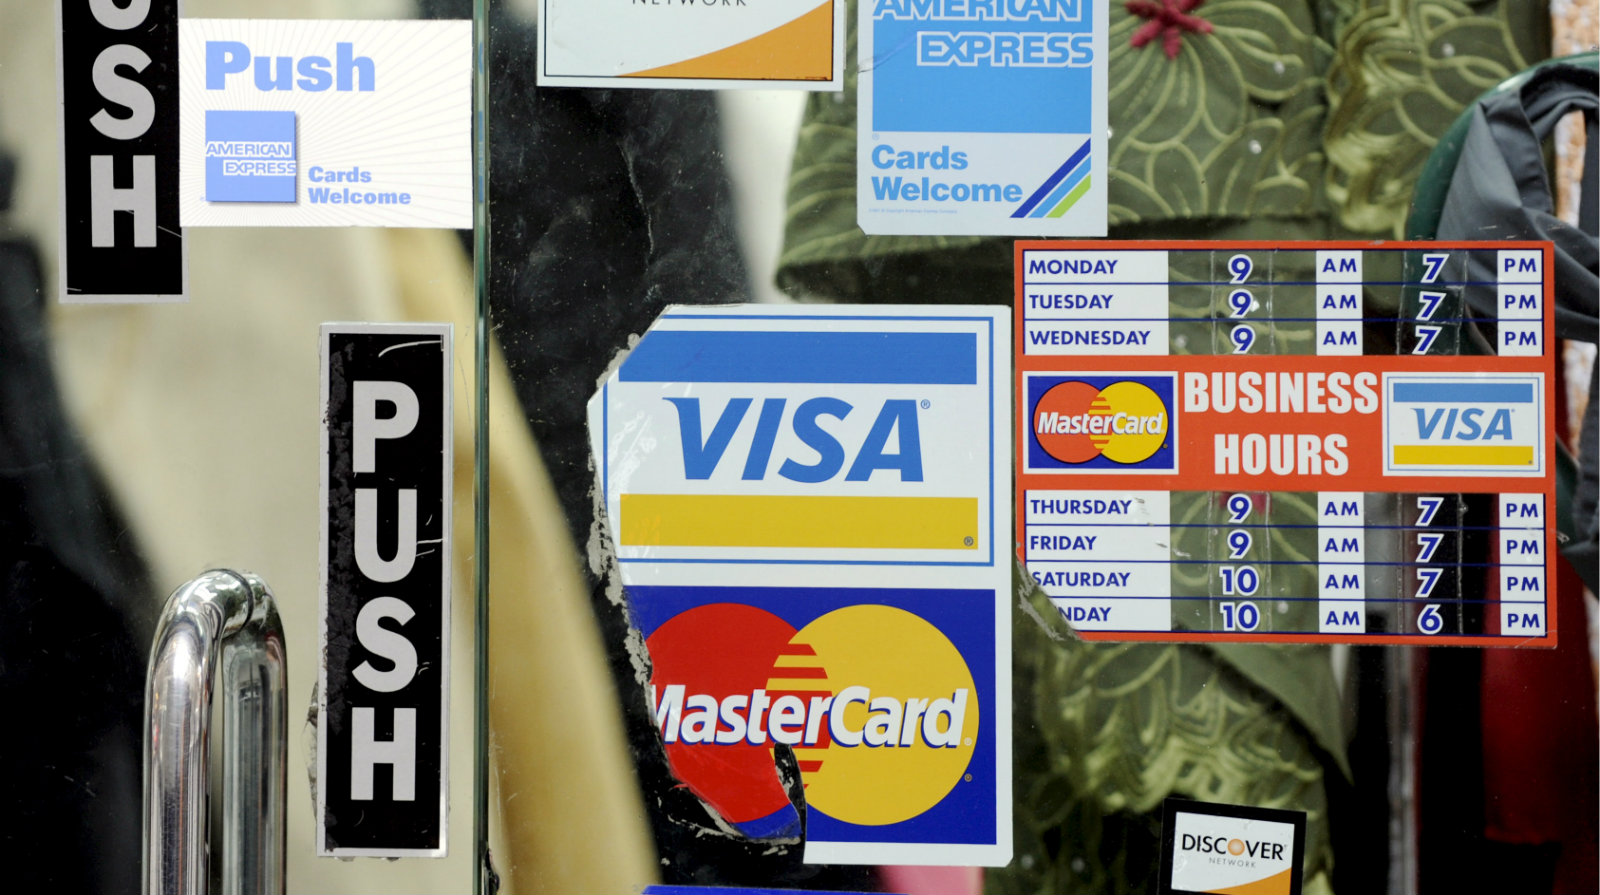 Stickers show the credit cards accepted at a store in New York, New York, USA, on 22 October 2008. With the United States economy faltering, consumers are likely to have a much more difficult time obtaining credit for purchases.  Credit